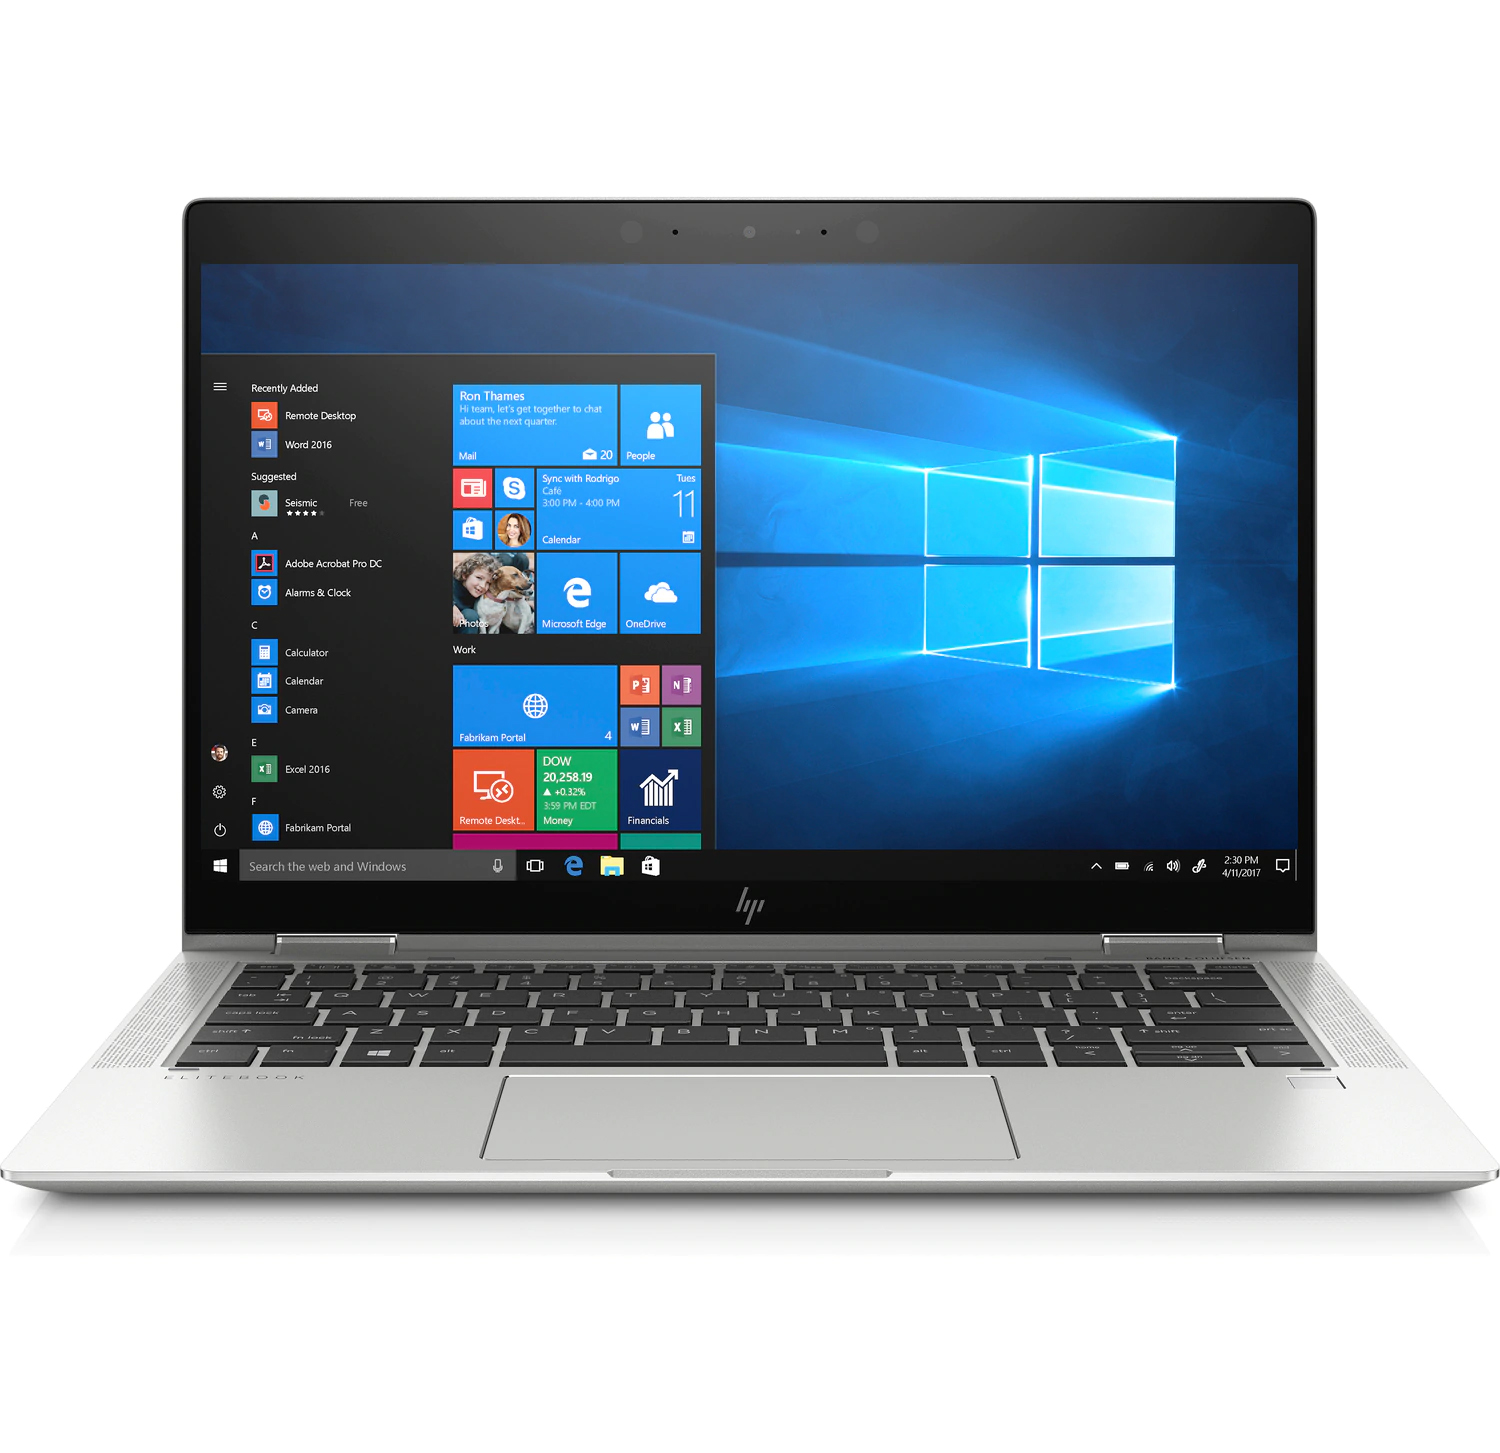 HP EliteBook X360 1030 G4 Laptop 8VZ71PA 13.3inch FHD Touchscreen Display with HP Sureview i7-8565U 16GB RAM 1TB SSD Win 10 Pro